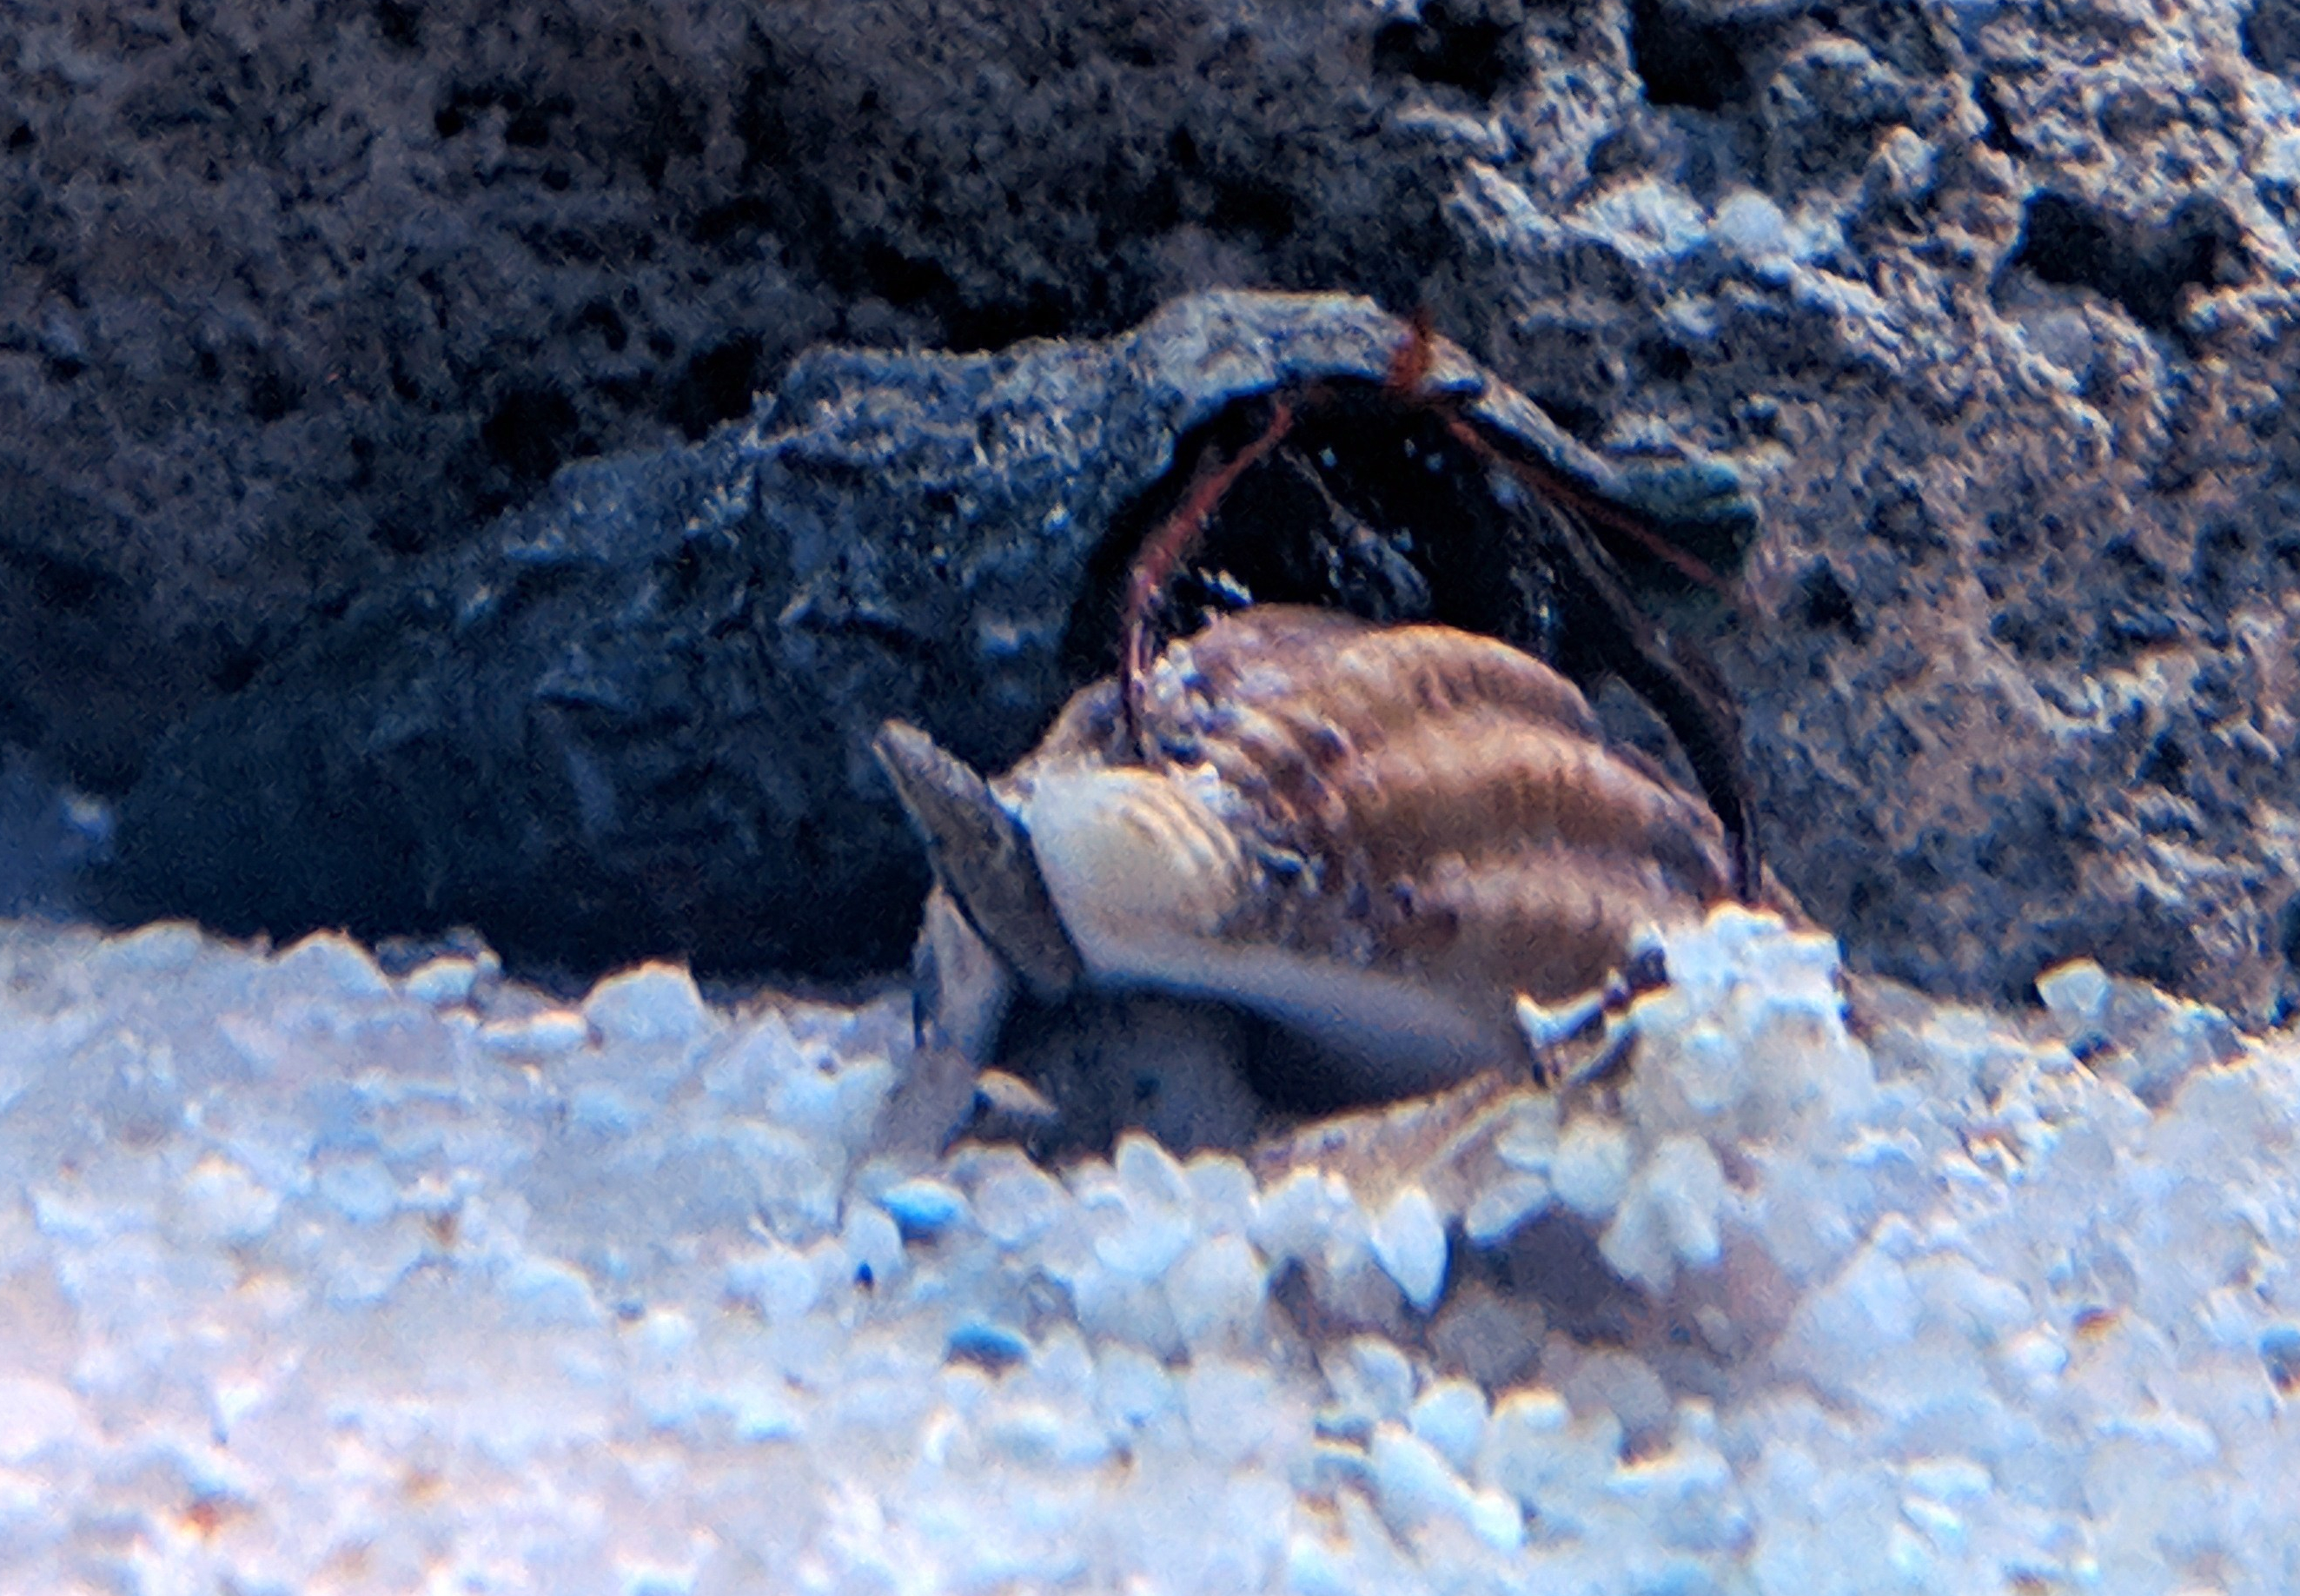 Nassarius Snail and Hermit Crab